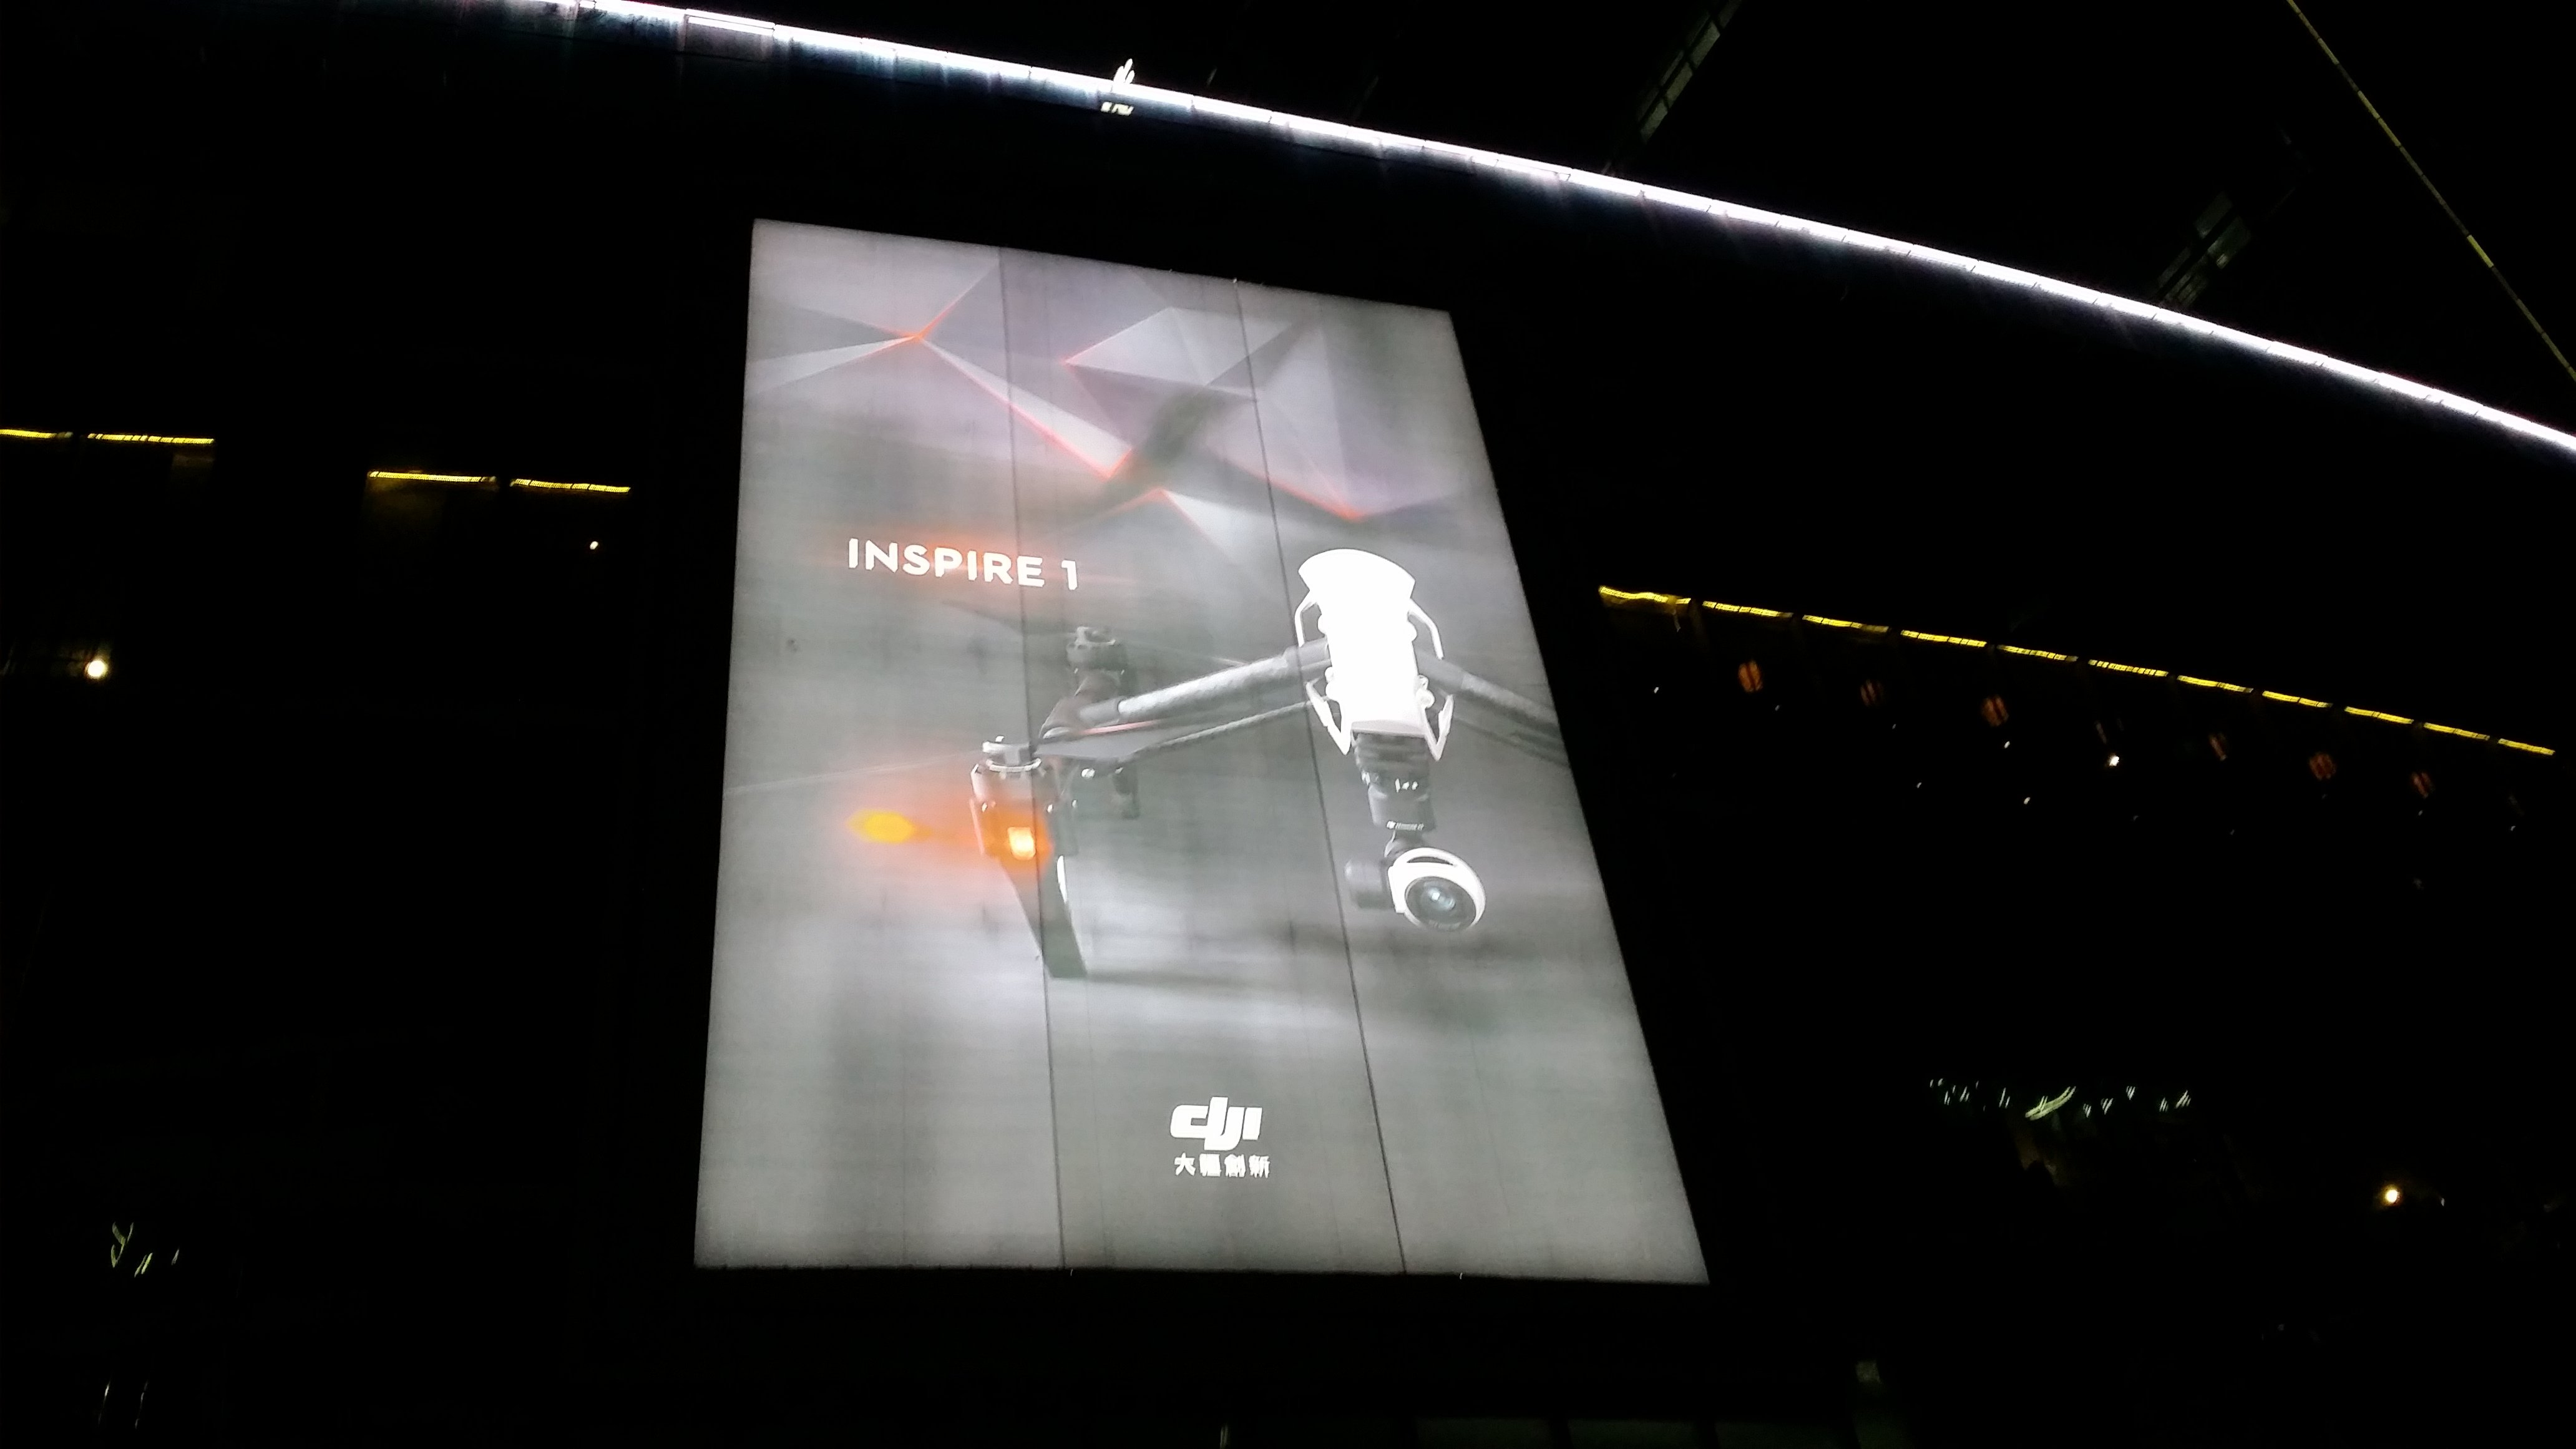 Massive DJI Inspire 1 poster on their HQ in Shenzhen, China